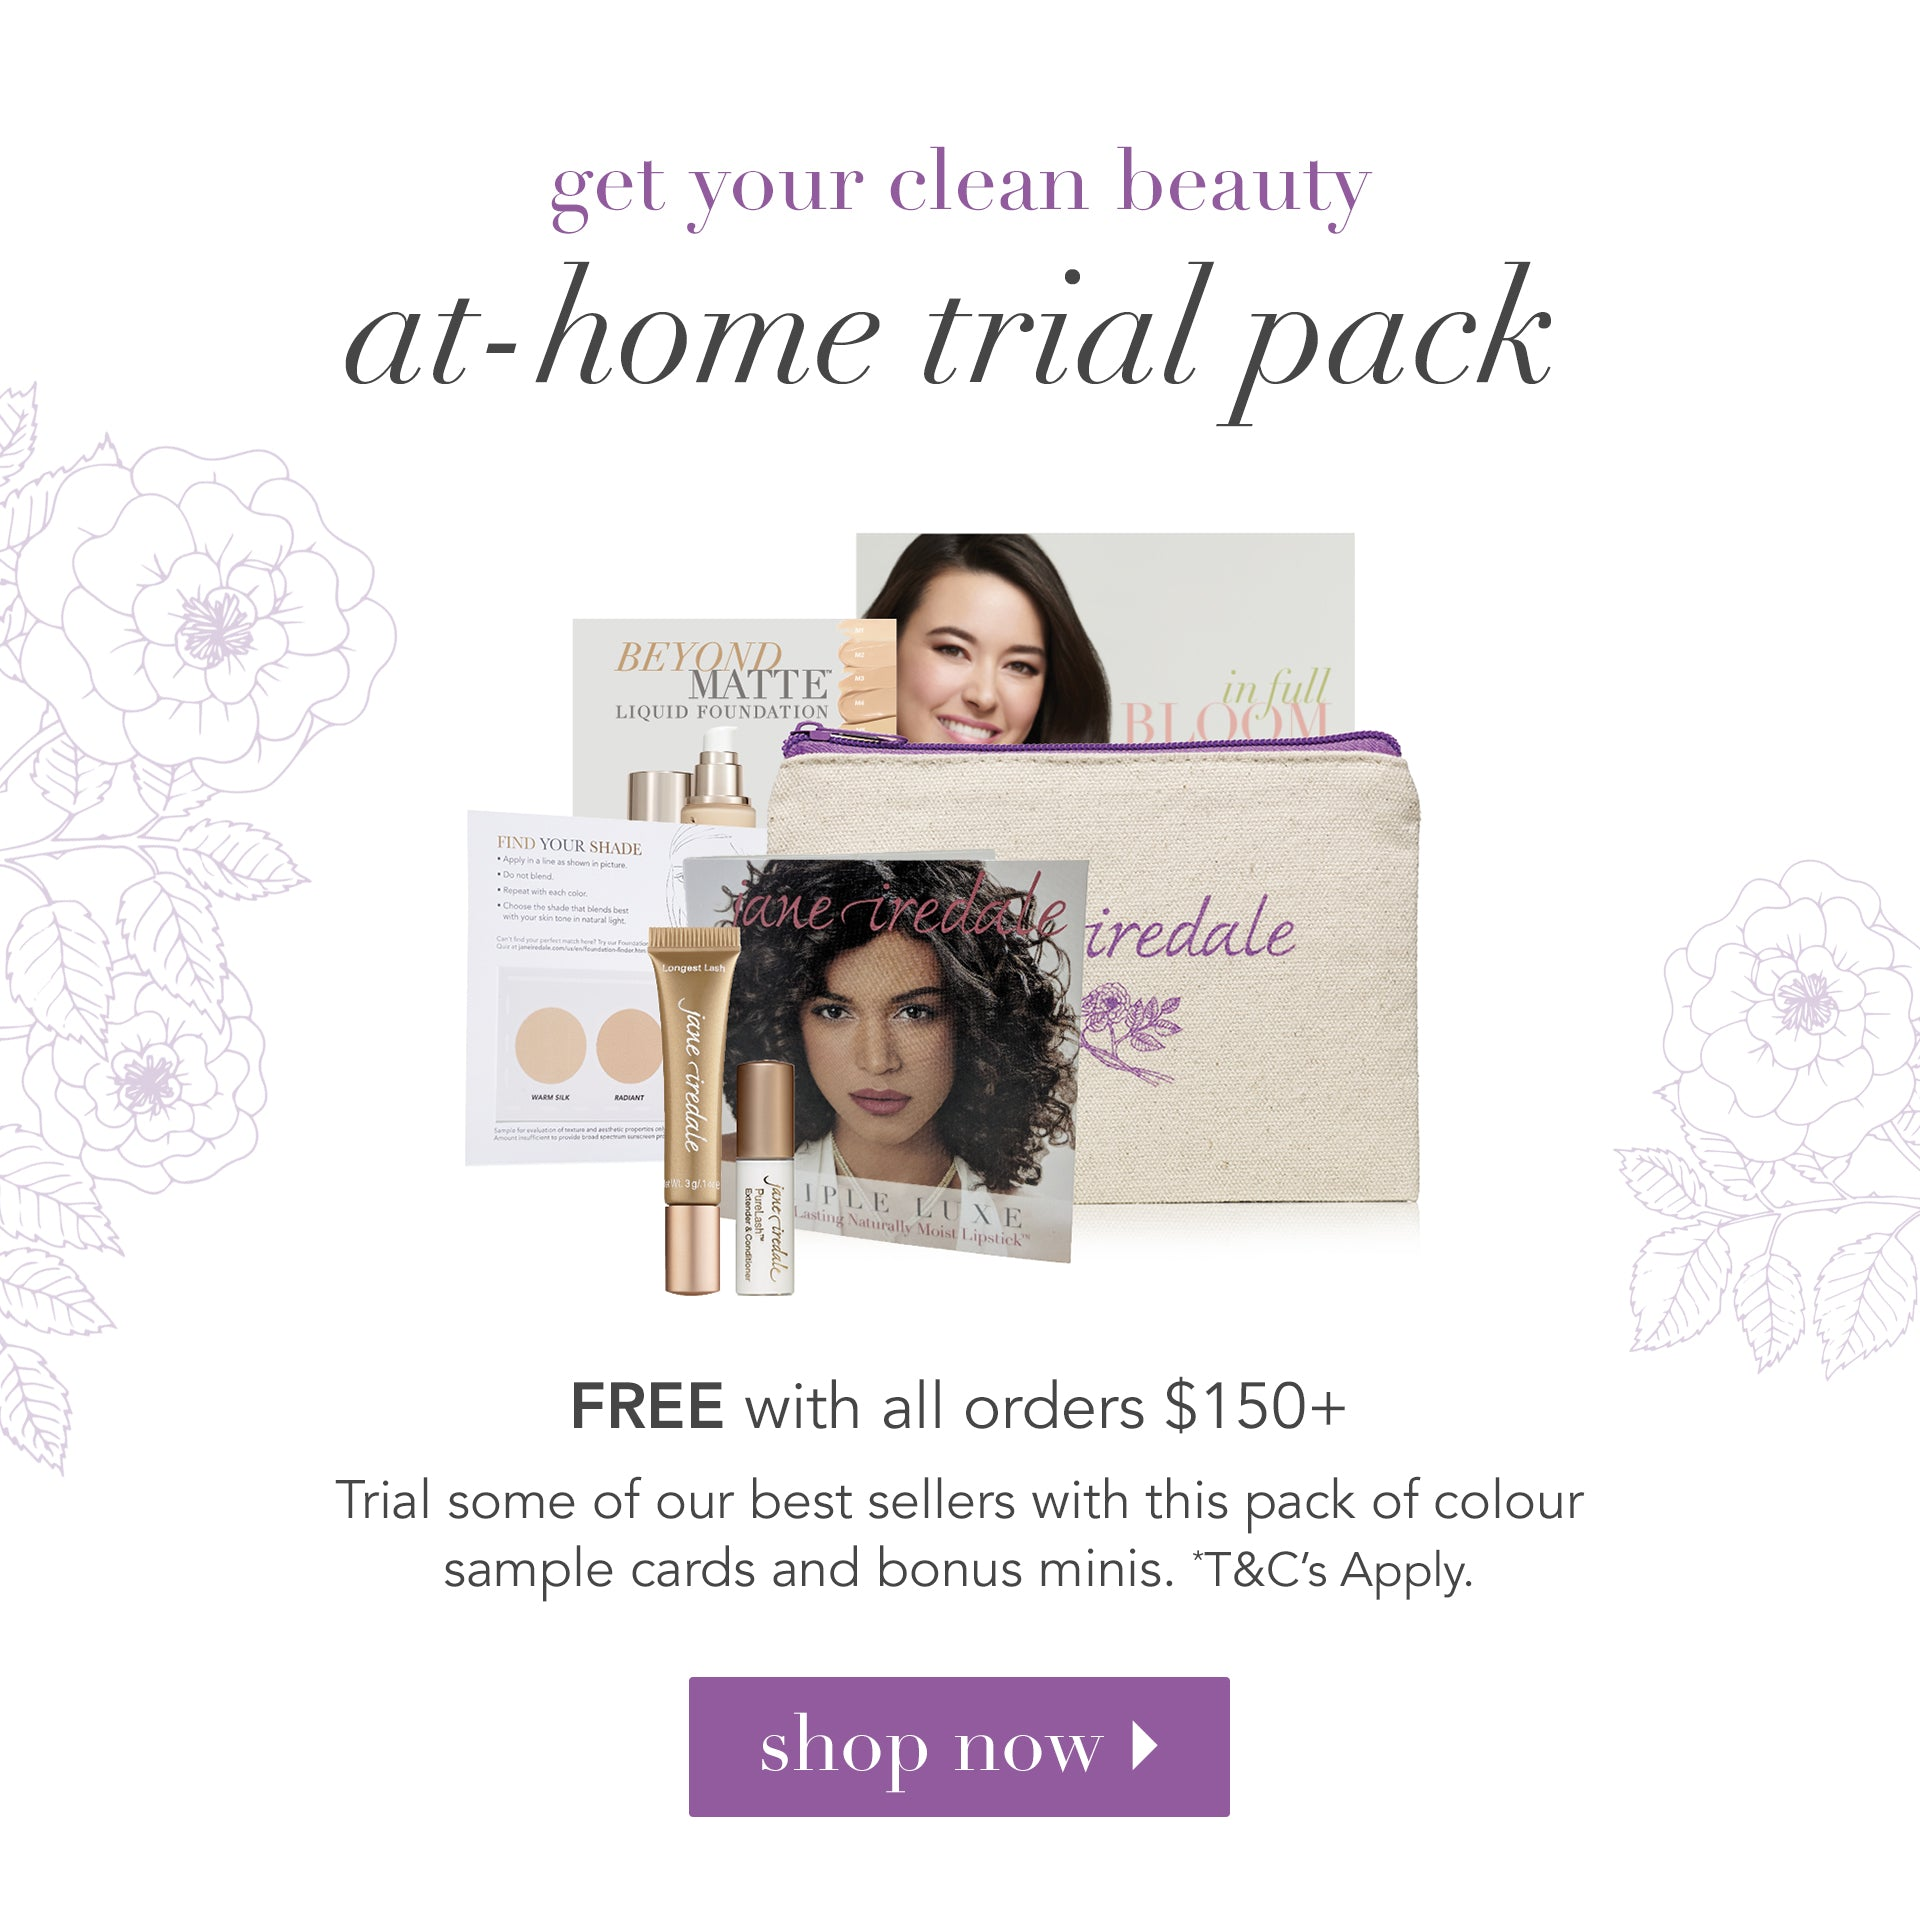 FREE at-home trial pack with orders $150+